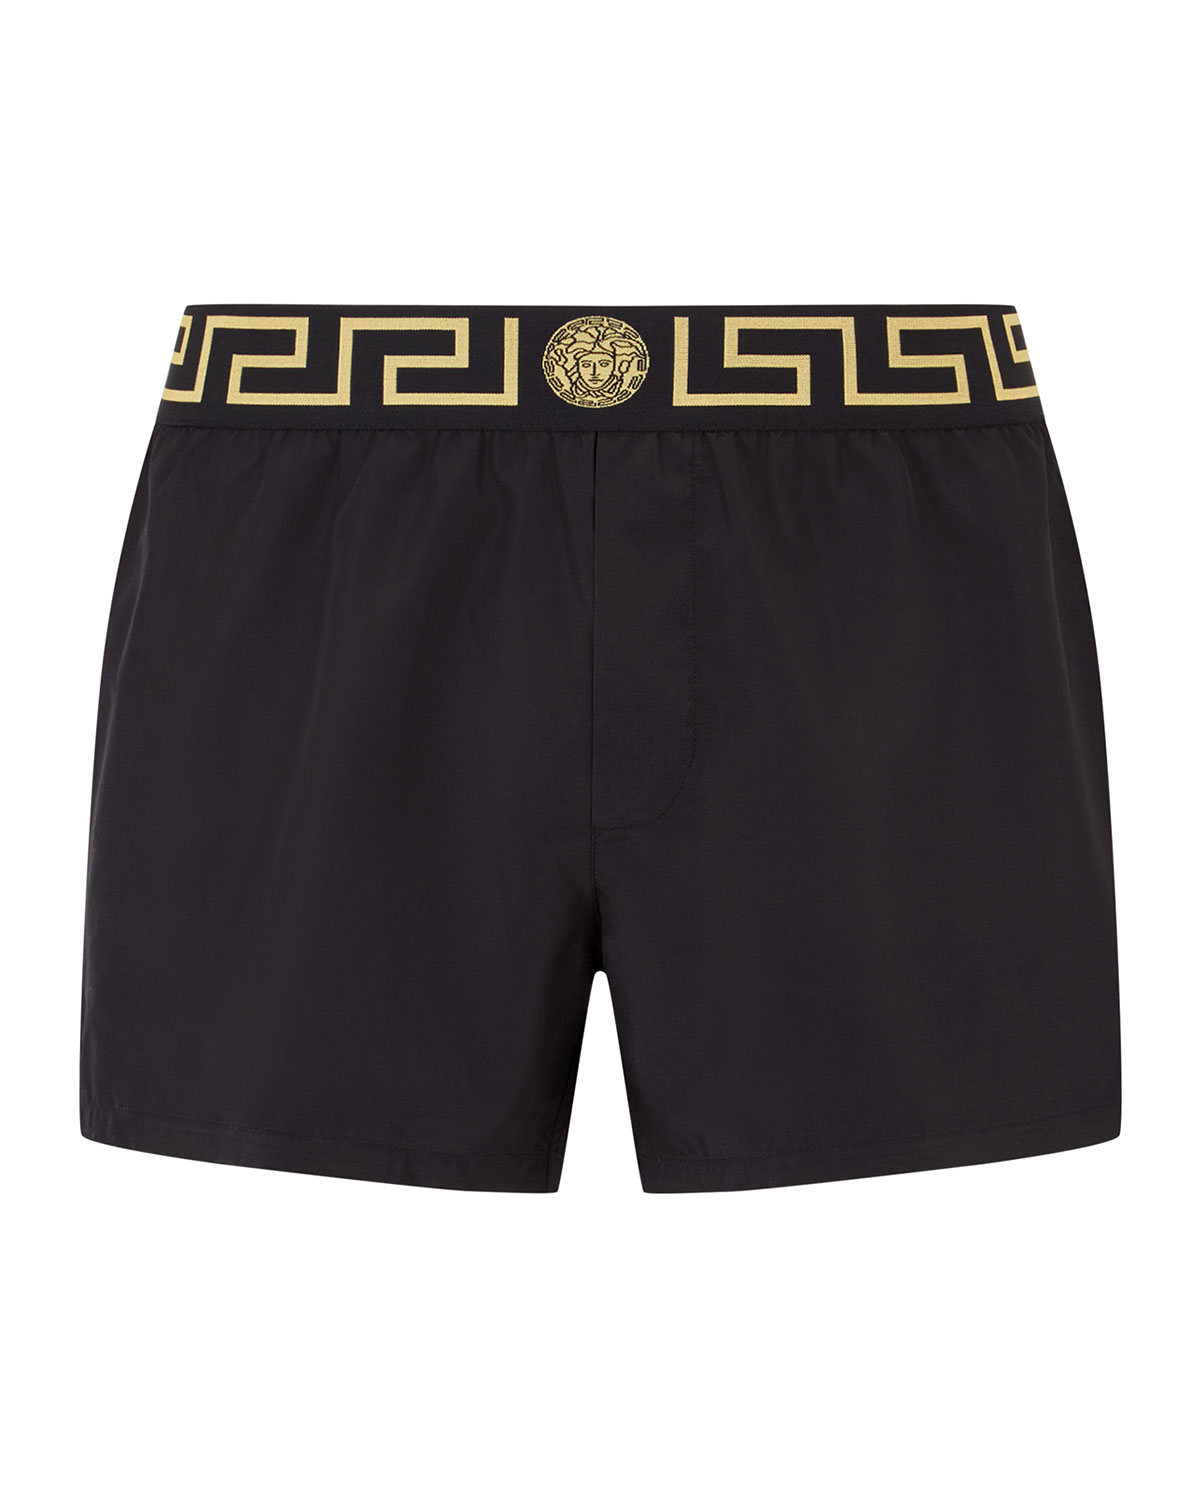 Versace Men's Net Short Swim Trunks | Neiman Marcus